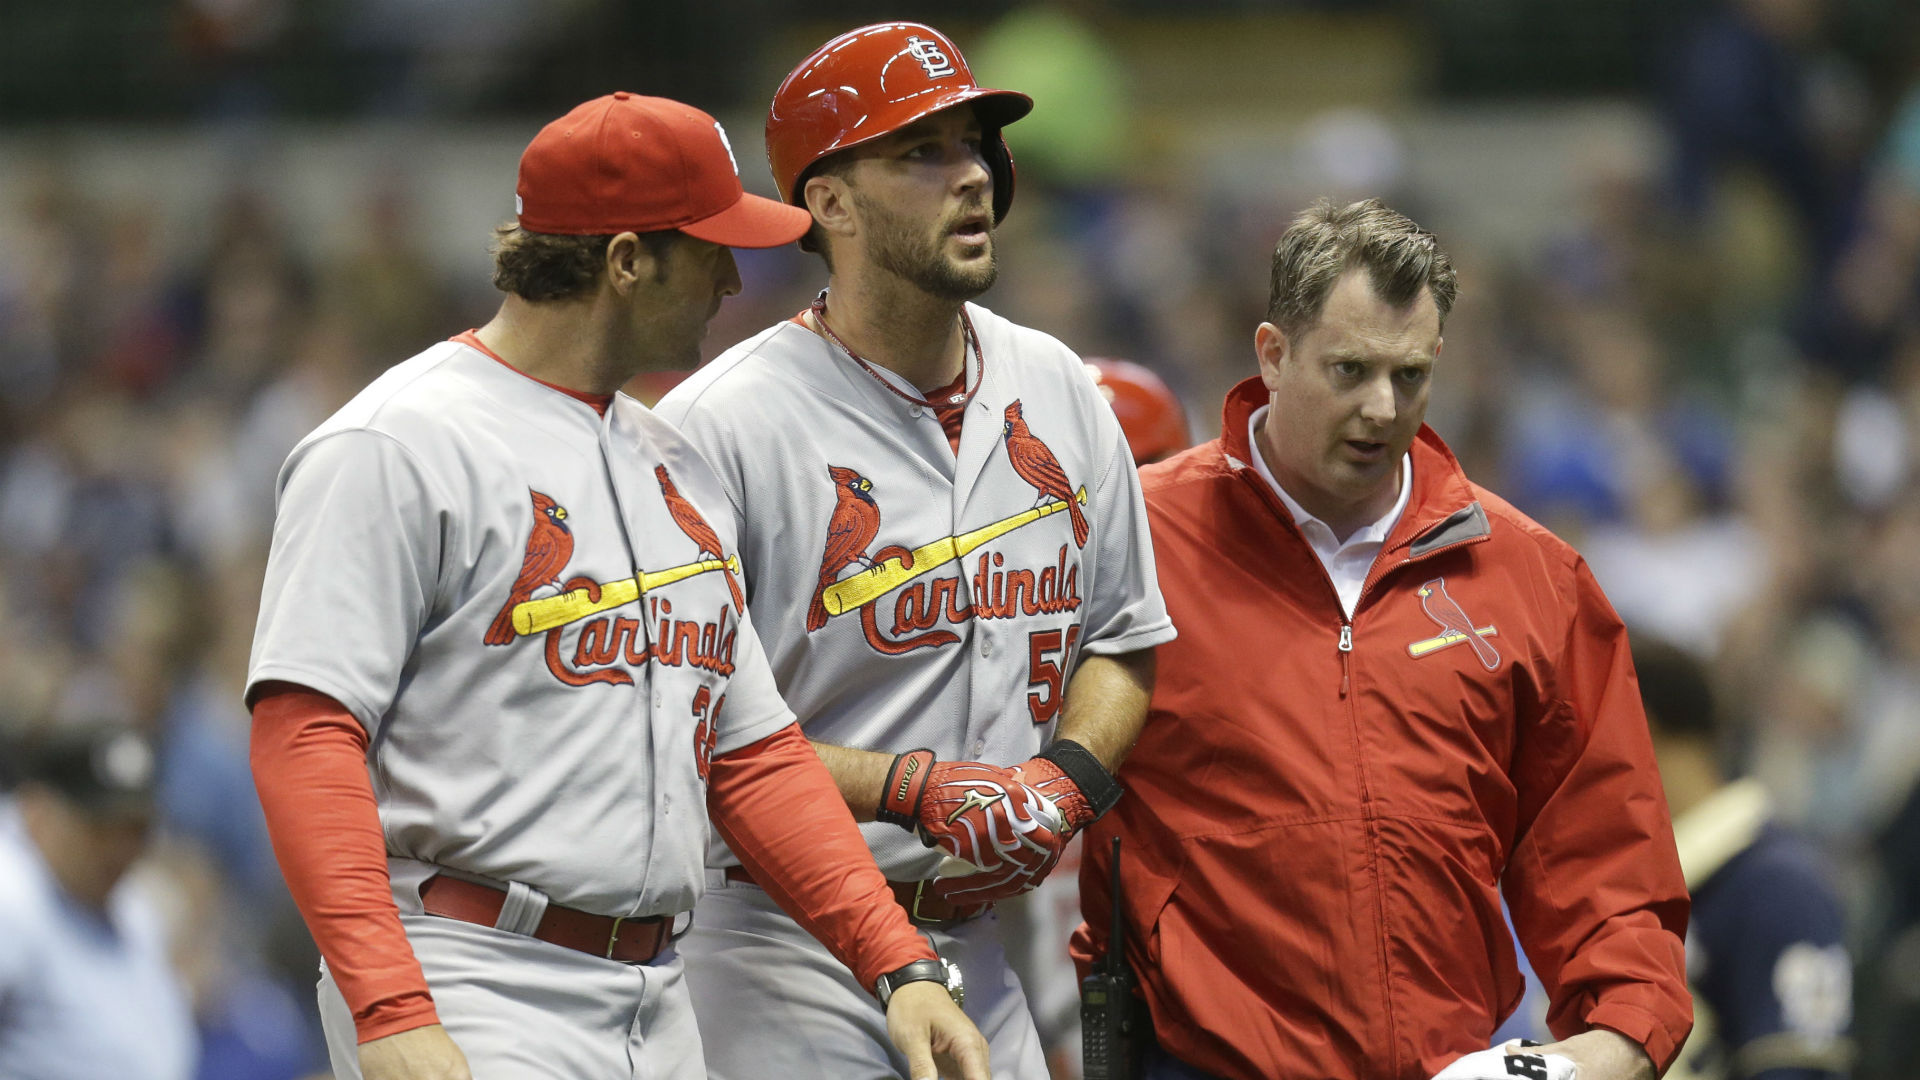 World Series odds - Cardinals' price lenghened after injury to Adam Wainwright